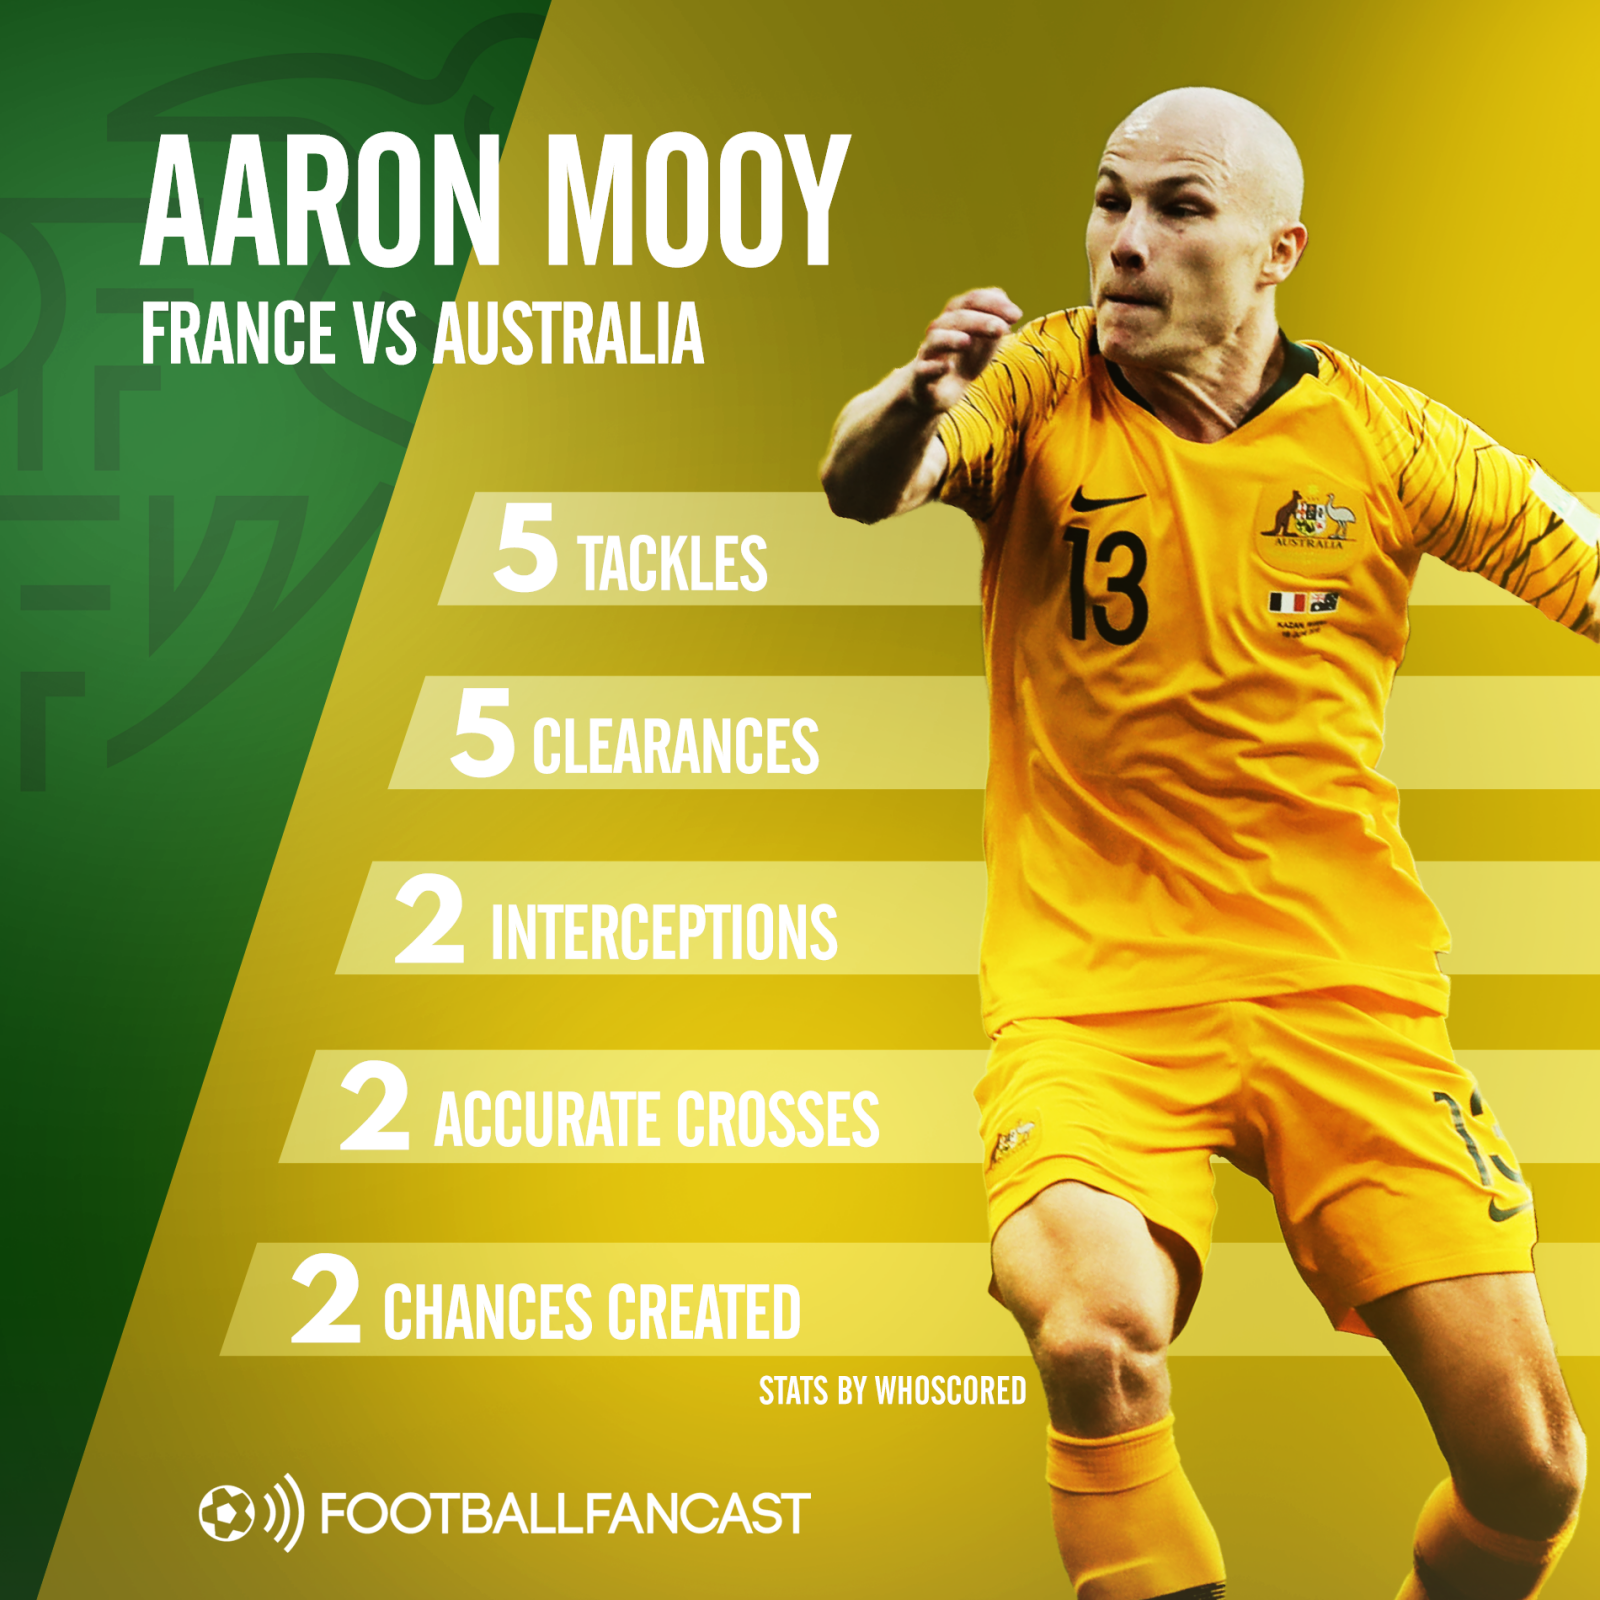 Aaron Mooy's stats from Australia's 2-1 defeat to France